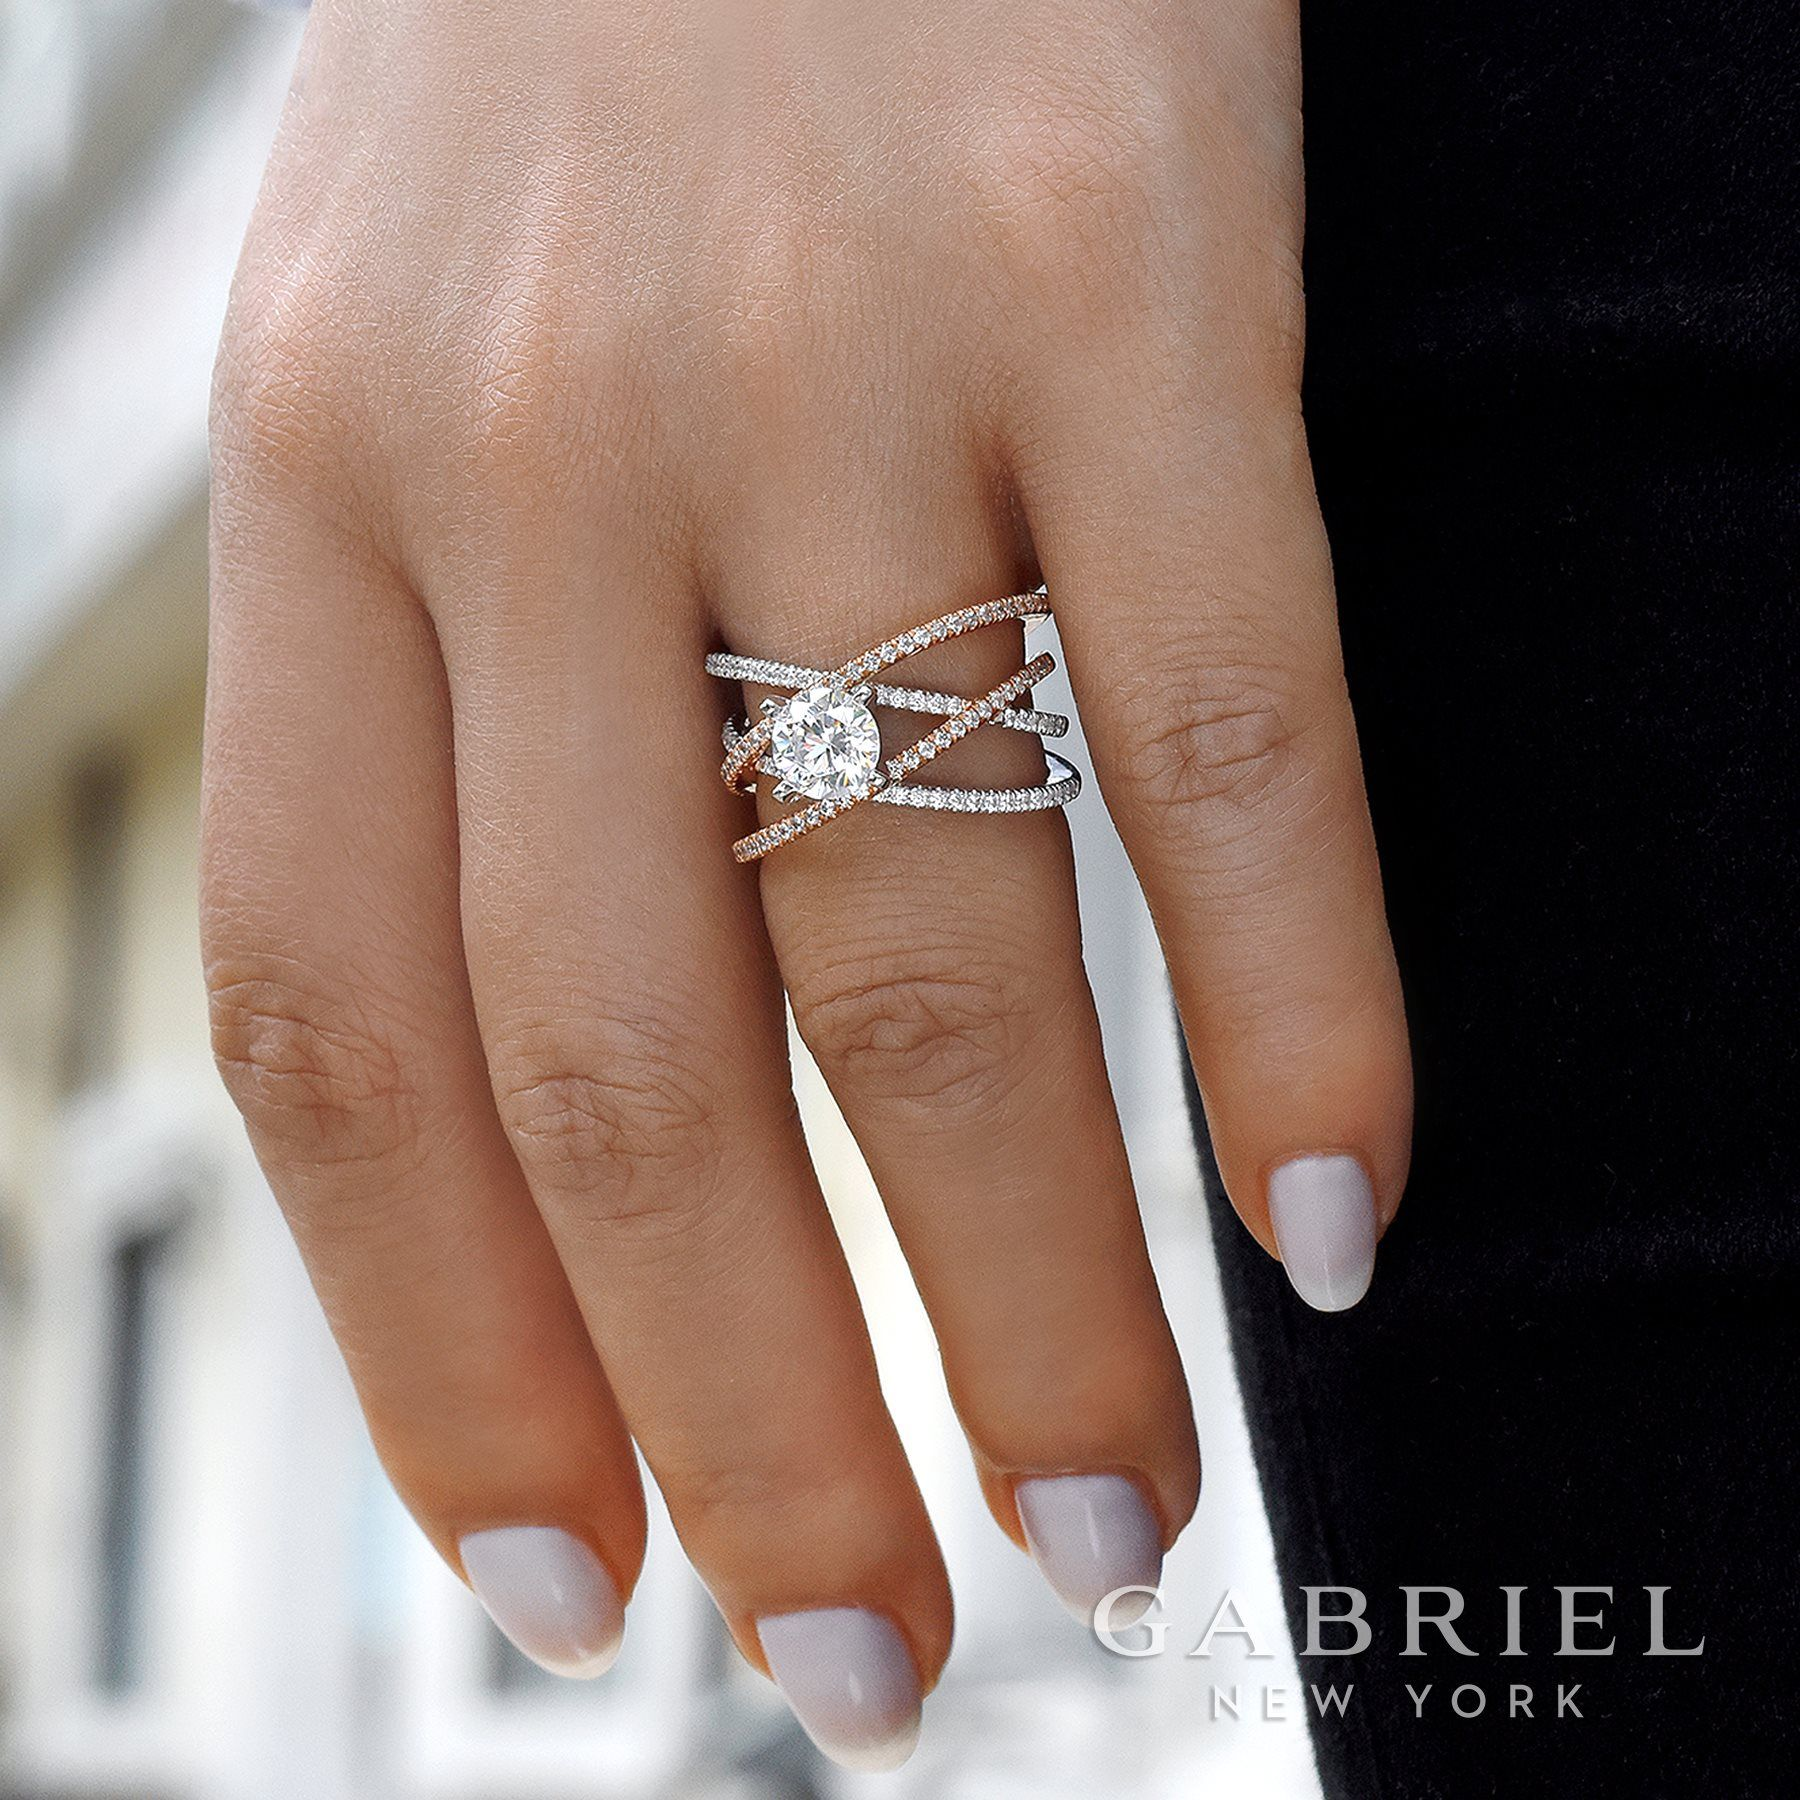 How do you like this Rose Gold and White Gold Criss Cross